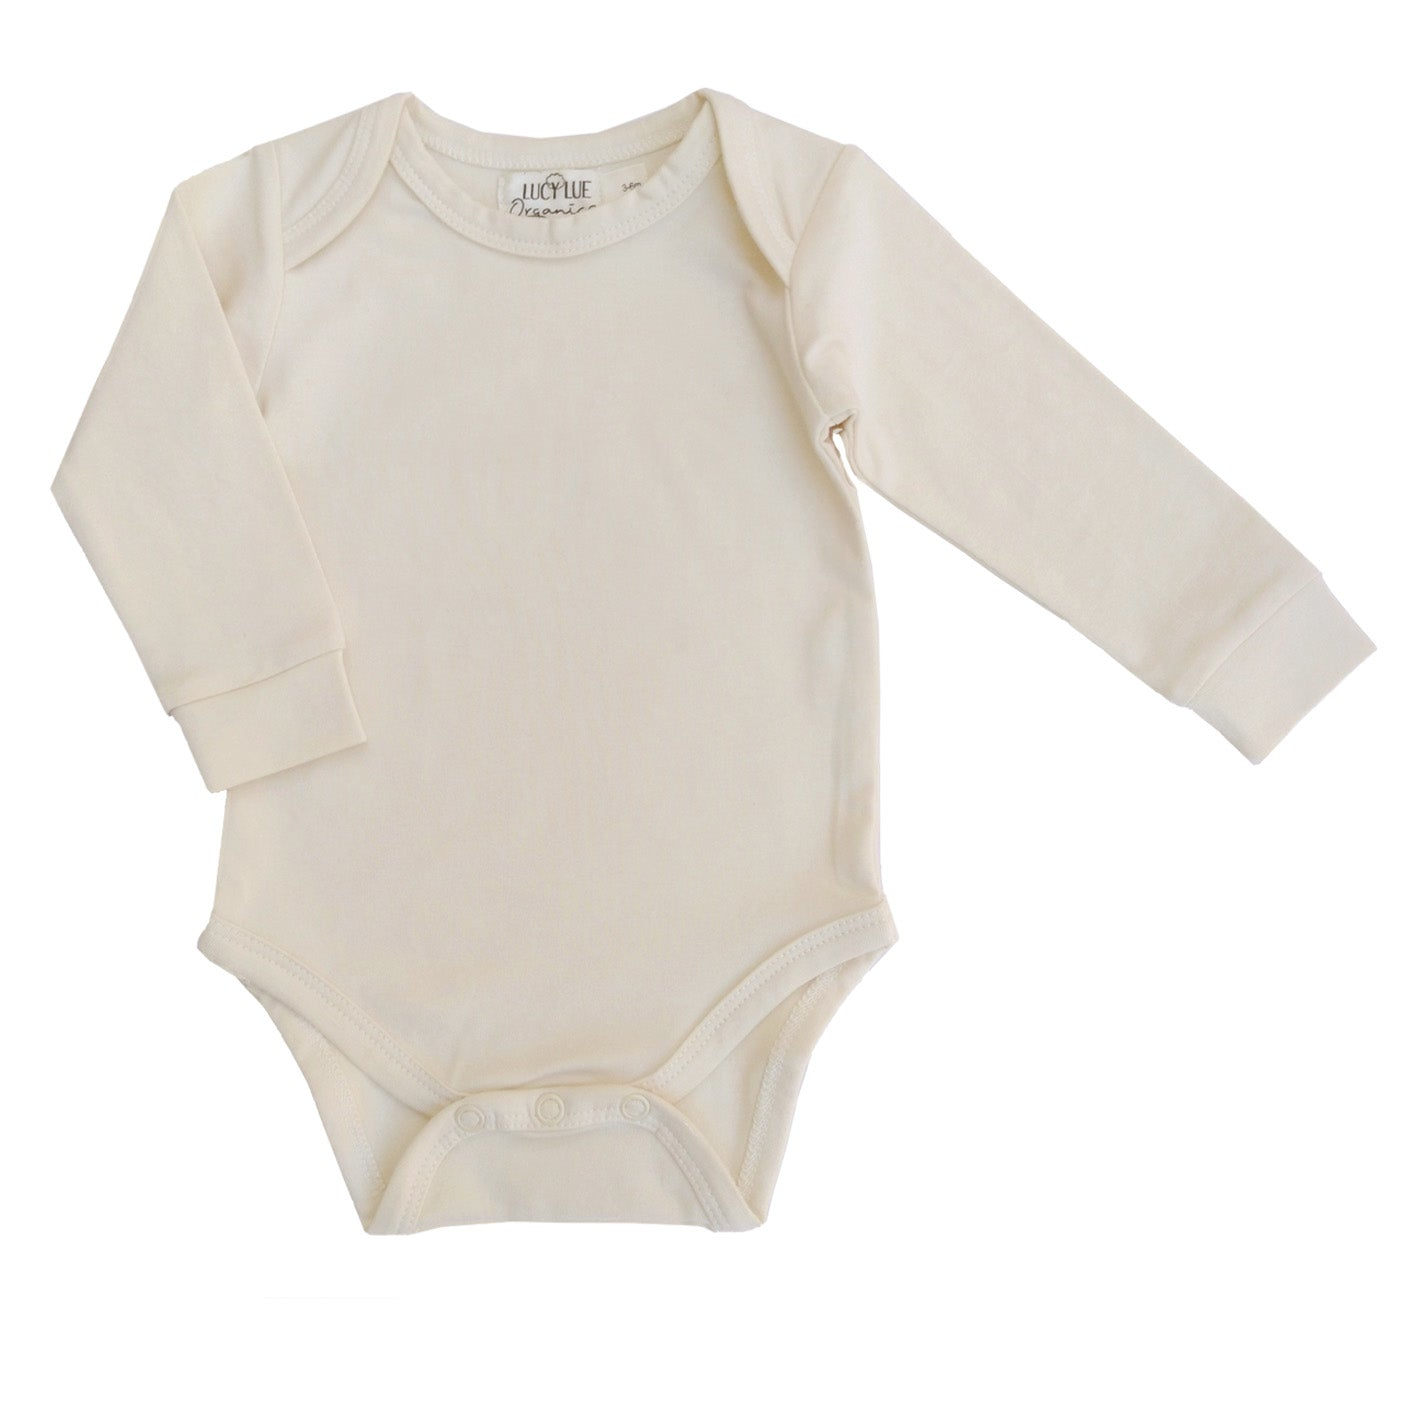 Lucy Lue Organics long sleeve baby bodysuit. Organic newborn clothes. Baby clothing. Gender neutral newborn clothes. Baby romper. Organic baby bodysuits. modern organic baby clothes. newborn clothes. sustainable baby clothes. Soft baby clothes. solid color baby clothes